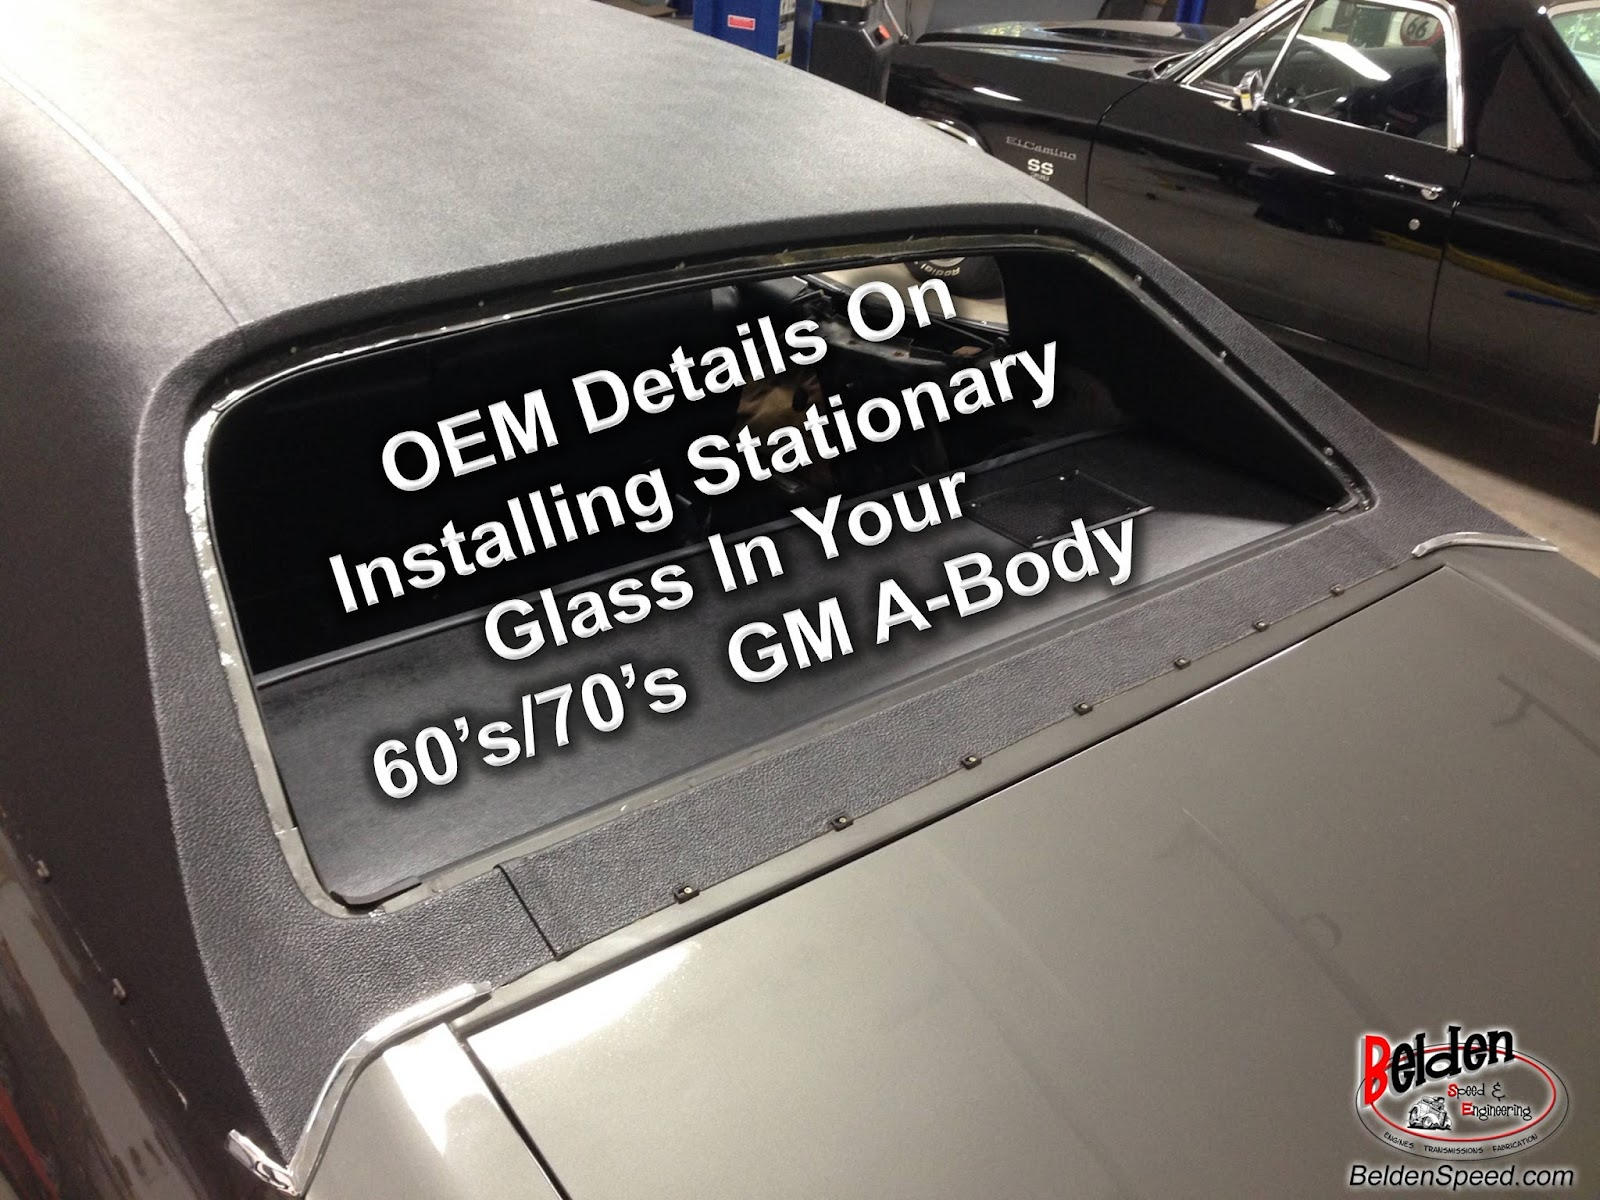 1960 S 70 S Gm A Body Stationary Oem Installation